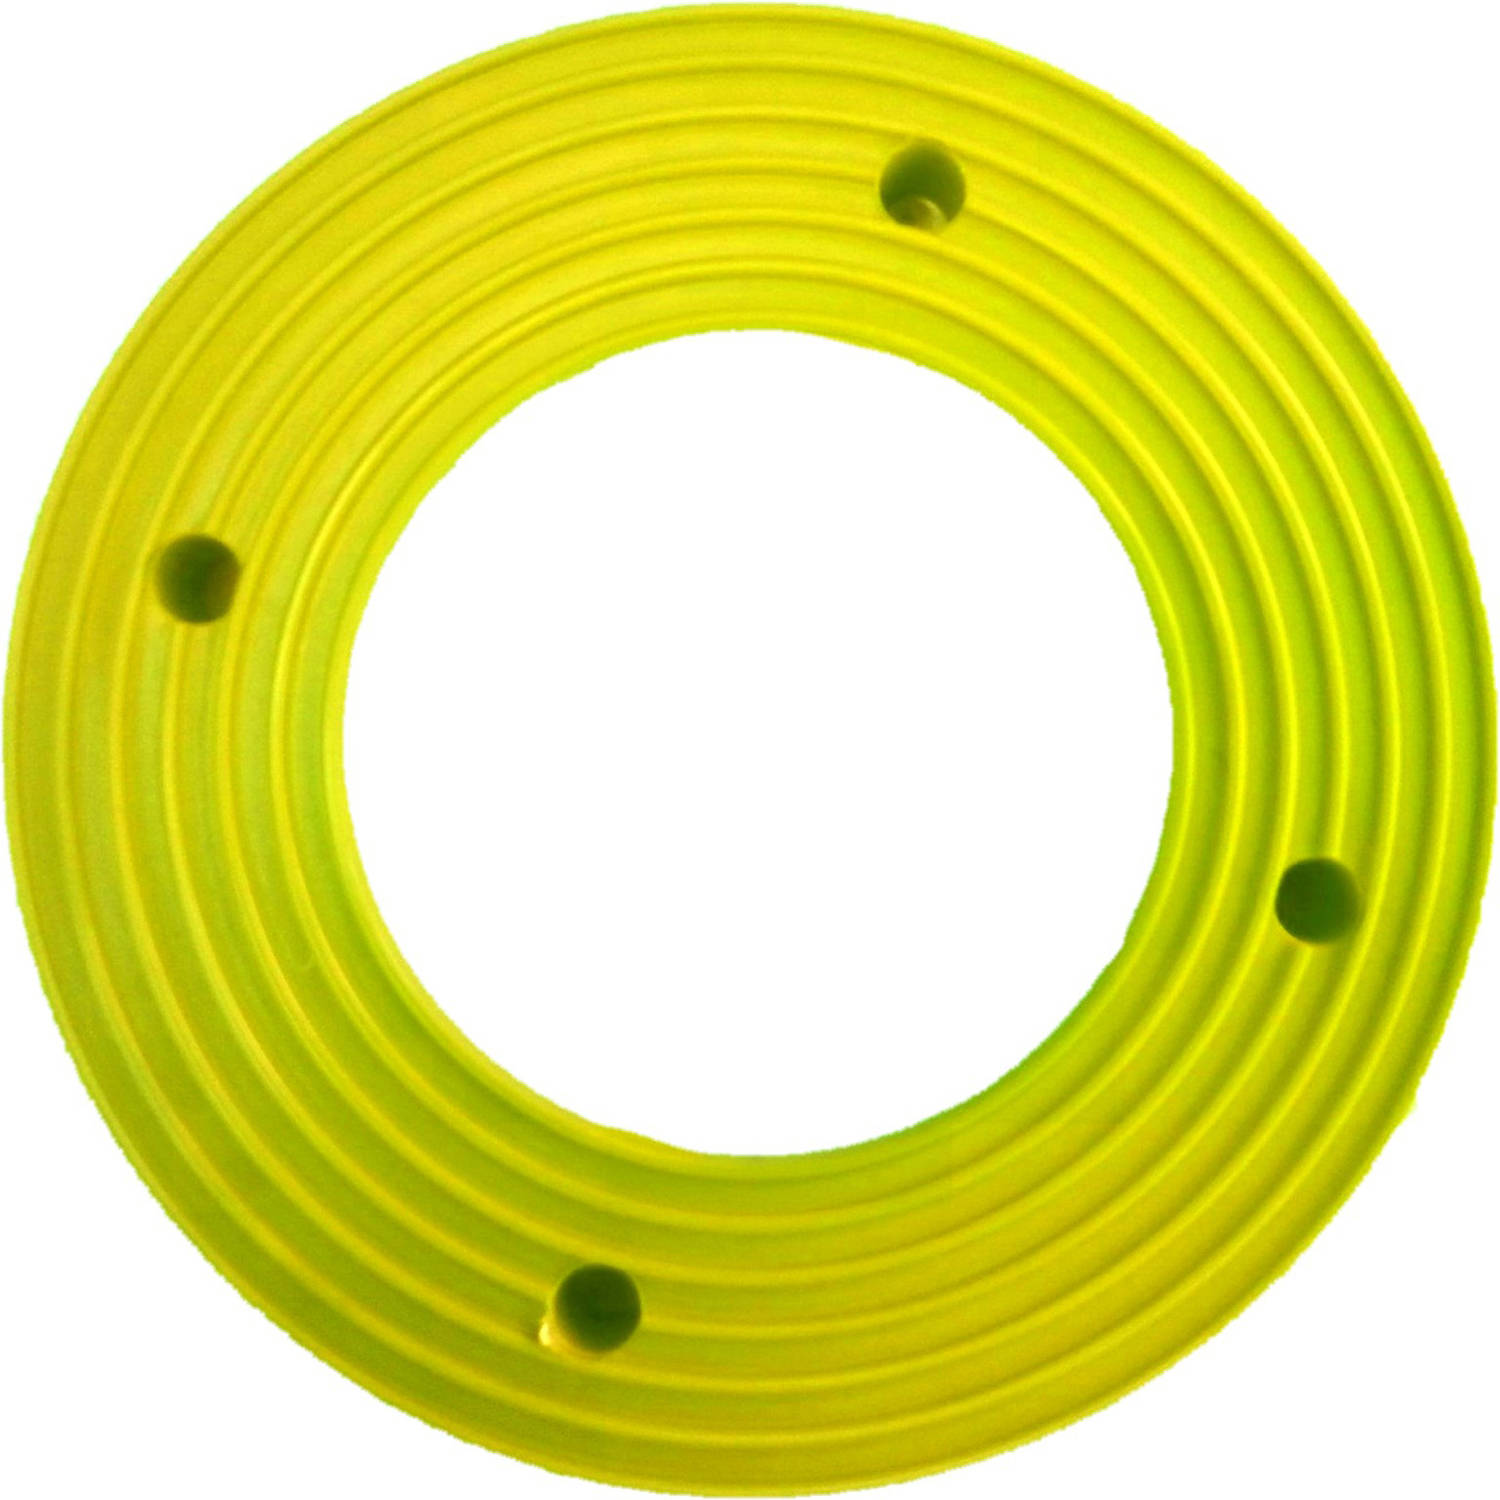 Plant Stand PlantJacks Bright's Collection, Citrus Yellow, Pack of 4, Multiple Sizes